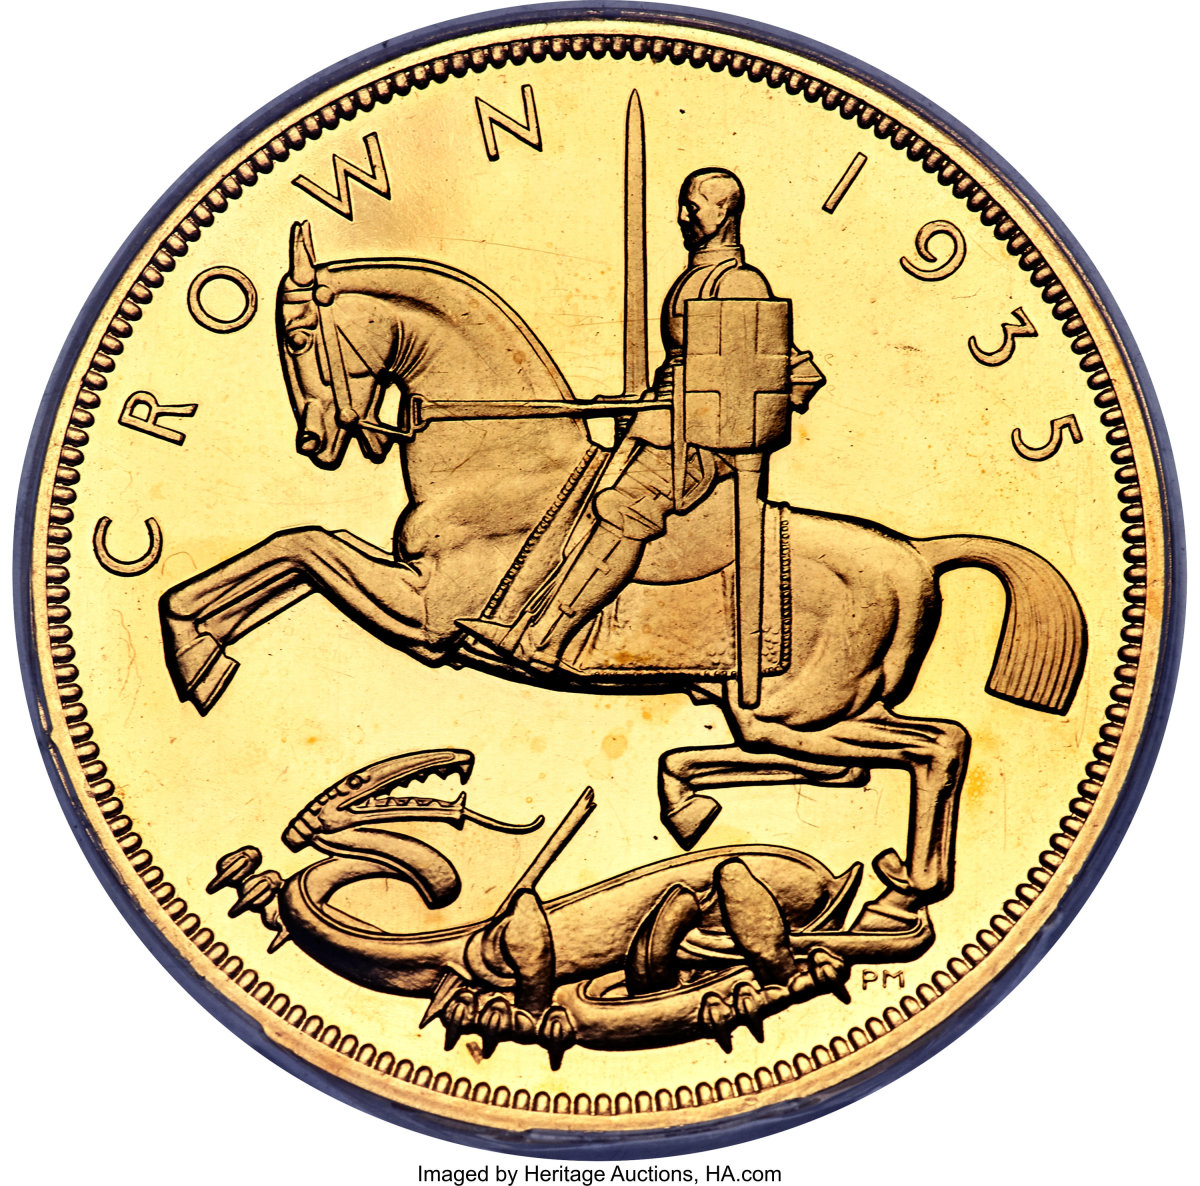 Desirable modern British milled gold: one of just 28 proofs struck in gold of George V's Jubilee 1935 crown (KM-842b; S-4050). It will go to the block in a superb PR65 Deep Cameo PCGS. (Image courtesy Heritage Auctions.)